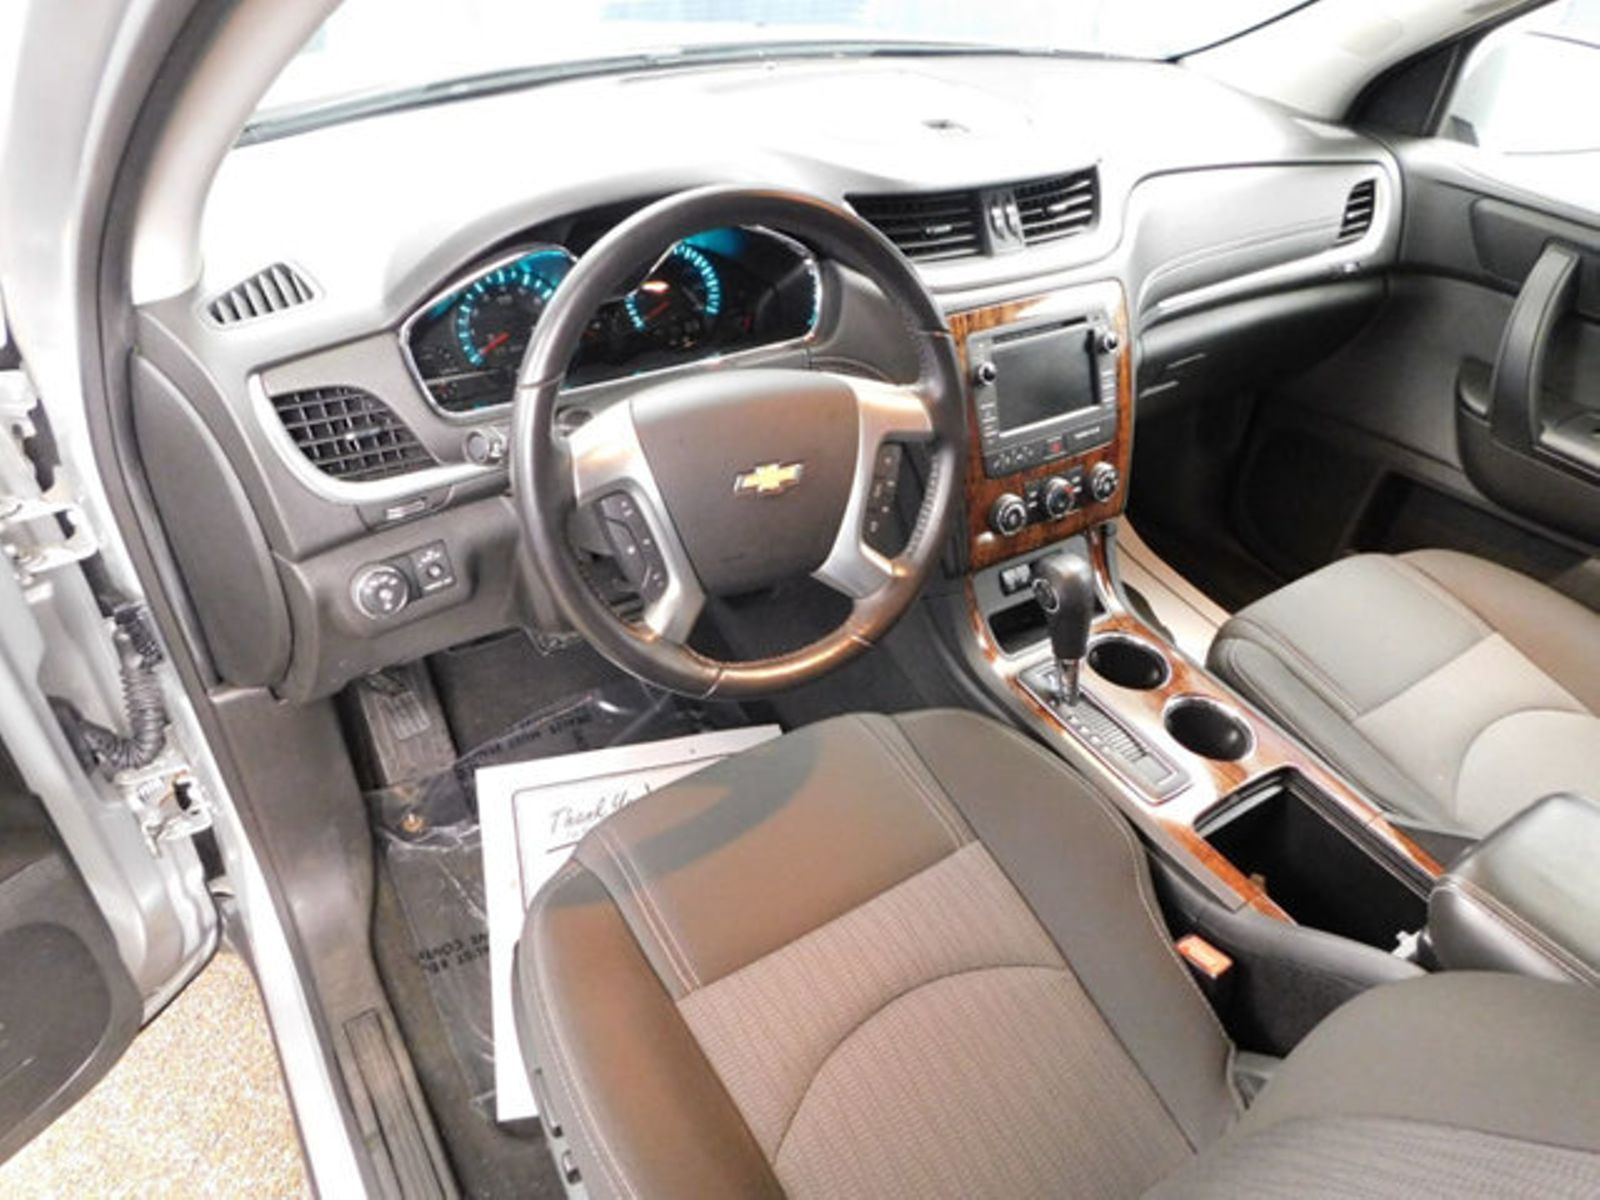 review automobiles video com chevrolet nytimes driven autoreviews chevy traverse superjumbo